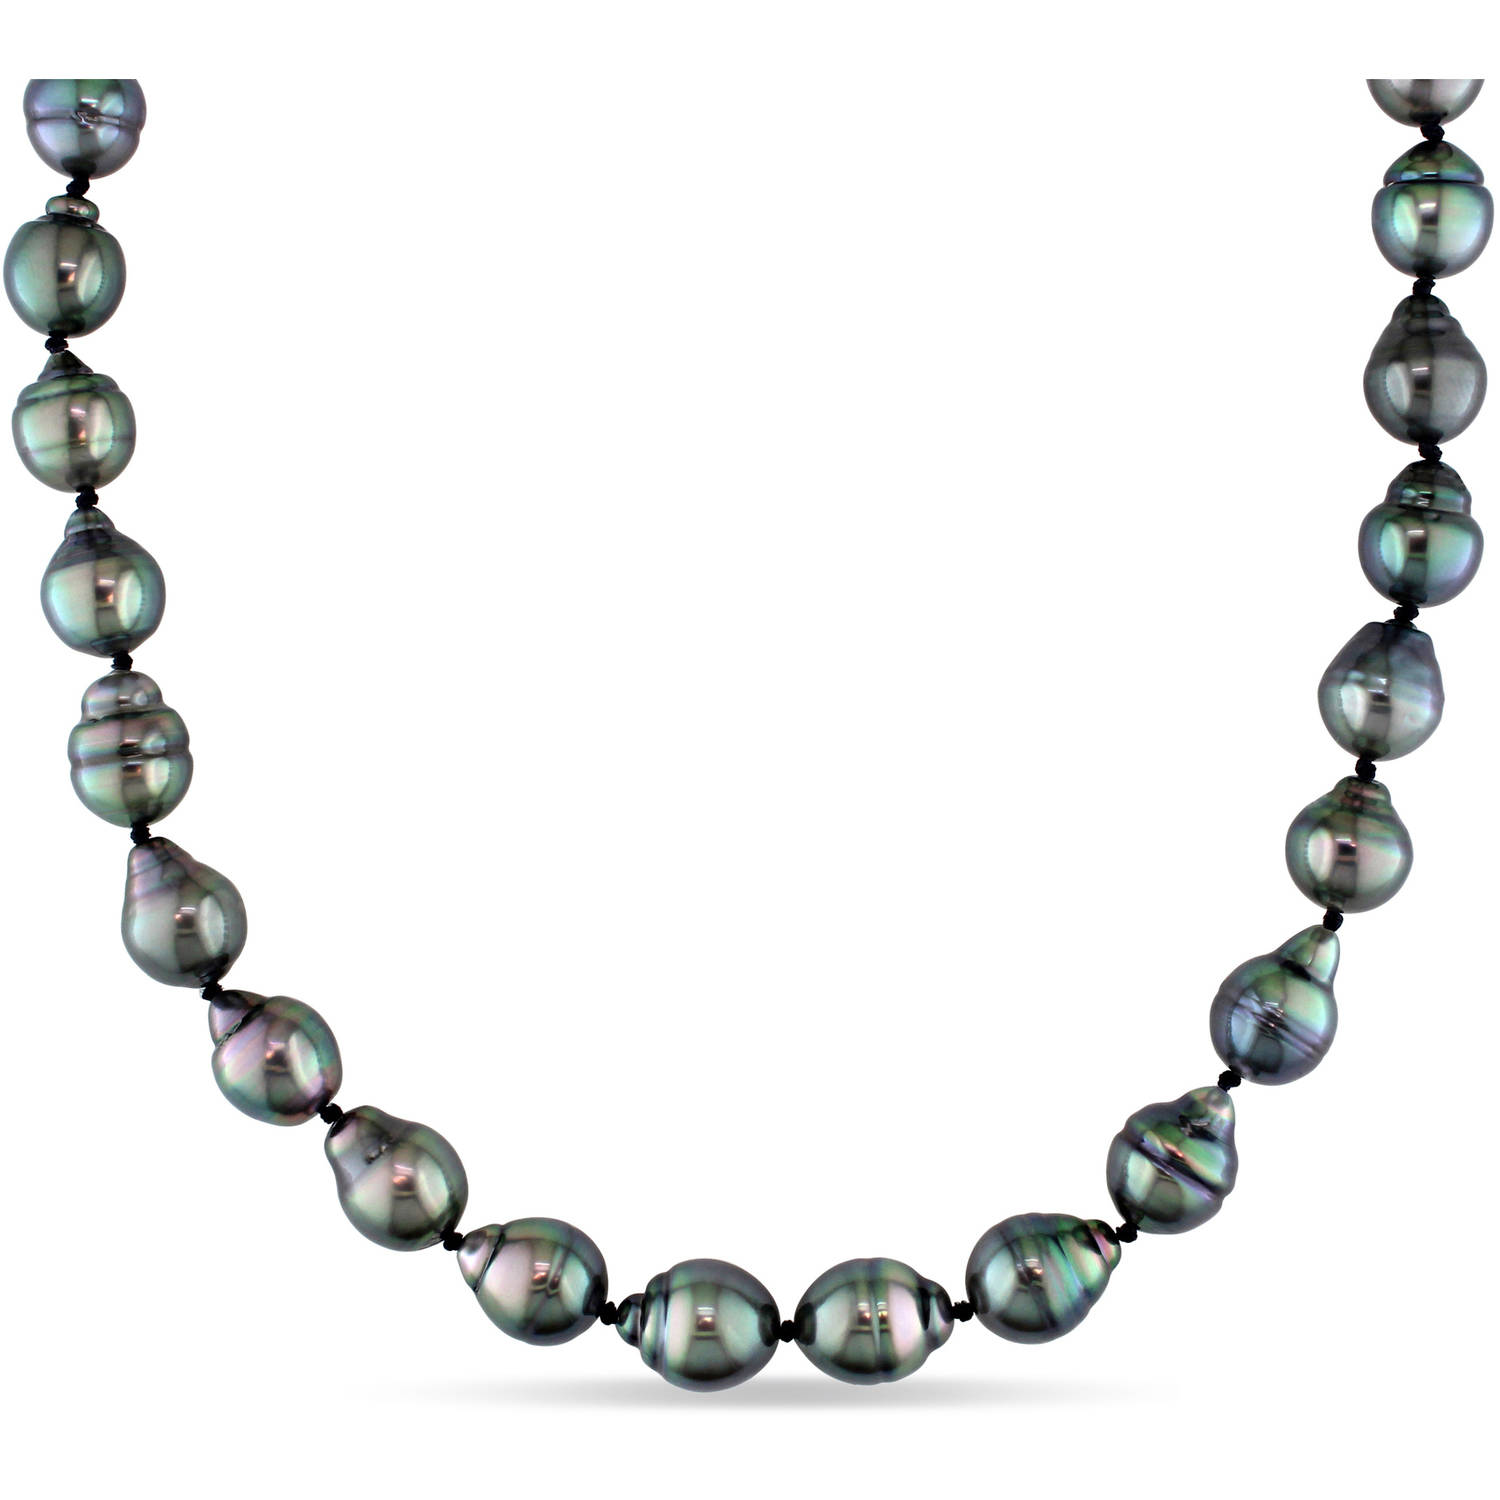 8-9.5mm Black Baroque Tahitian Pearl 14kt White Gold Strand Necklace, 18